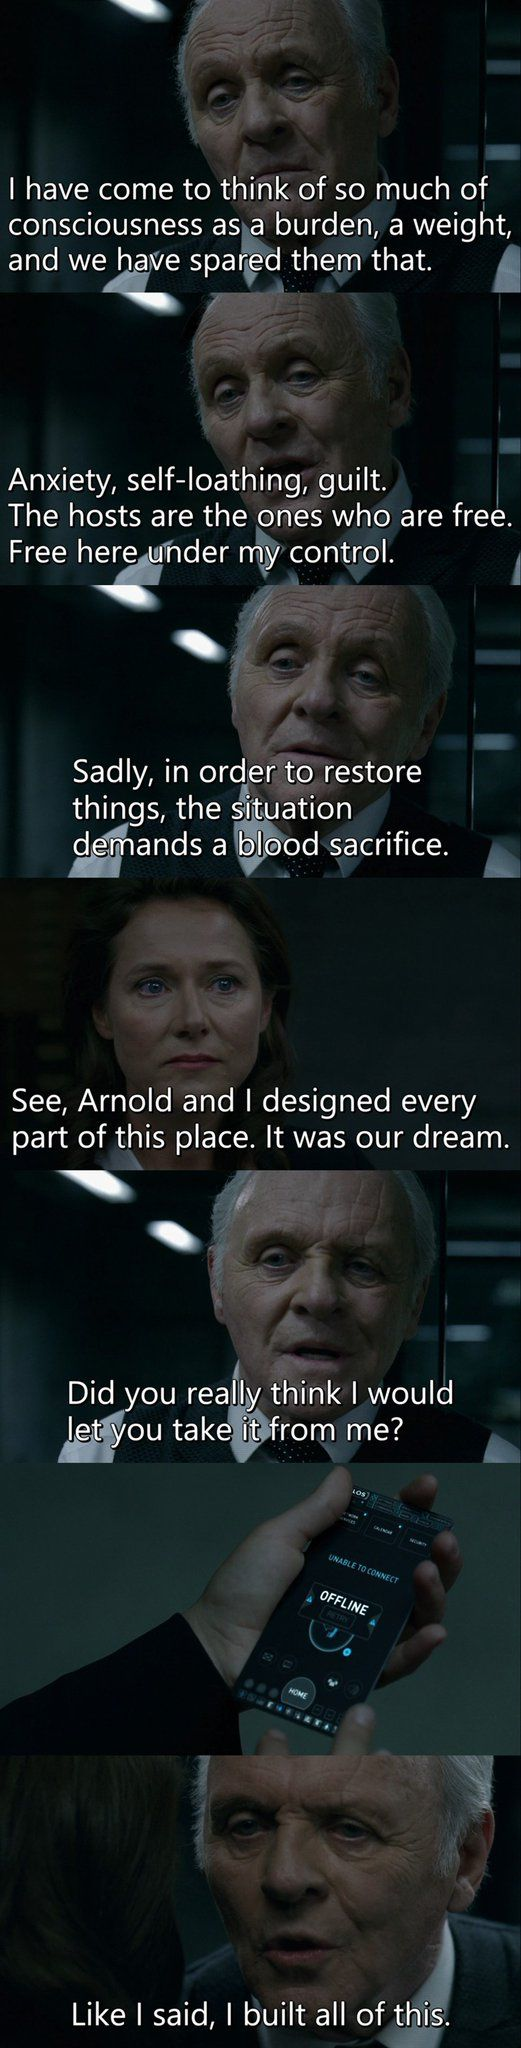 """""""Arnold and I designed every part of this place. It was our dream. Did you really think I would let you take it from me?"""" - Dr. Ford and Theresa #Westworld"""